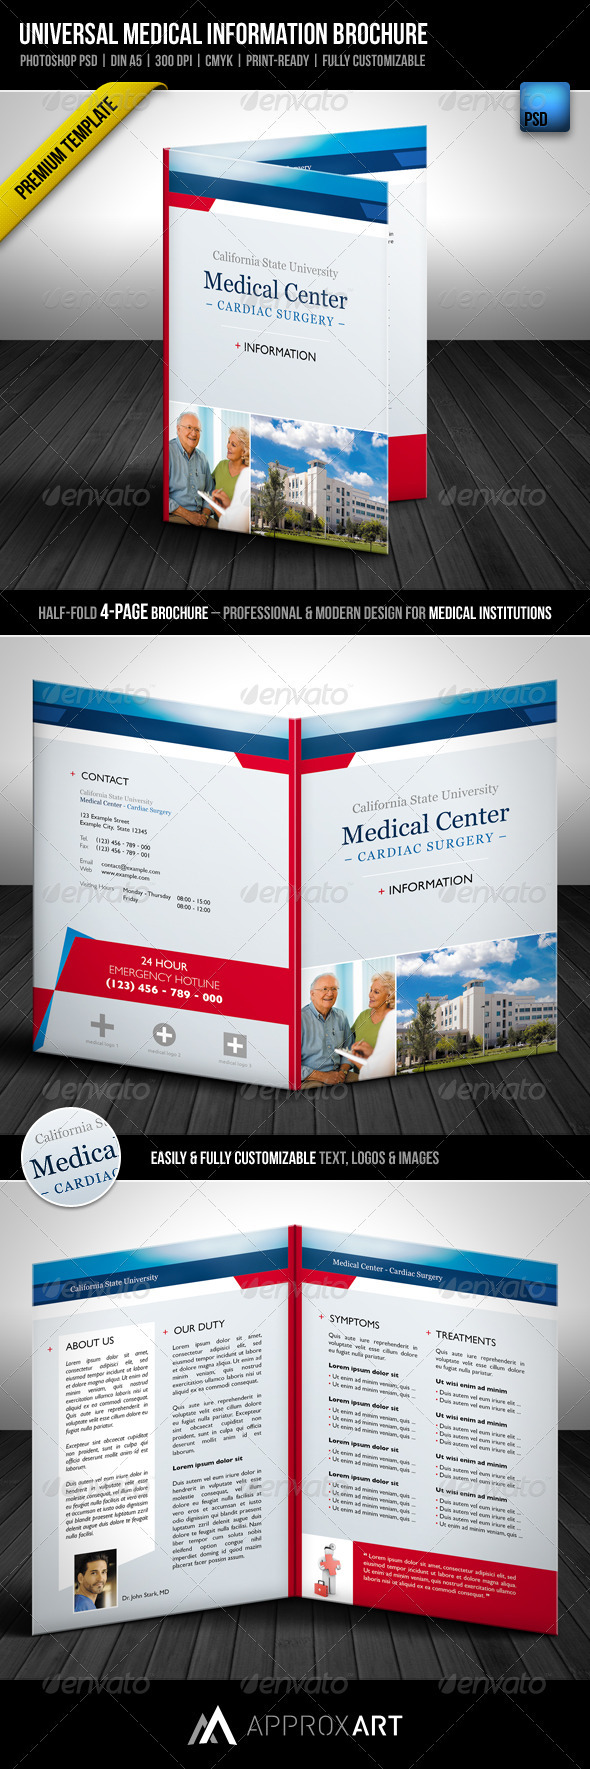 Universal Medical Information Brochure